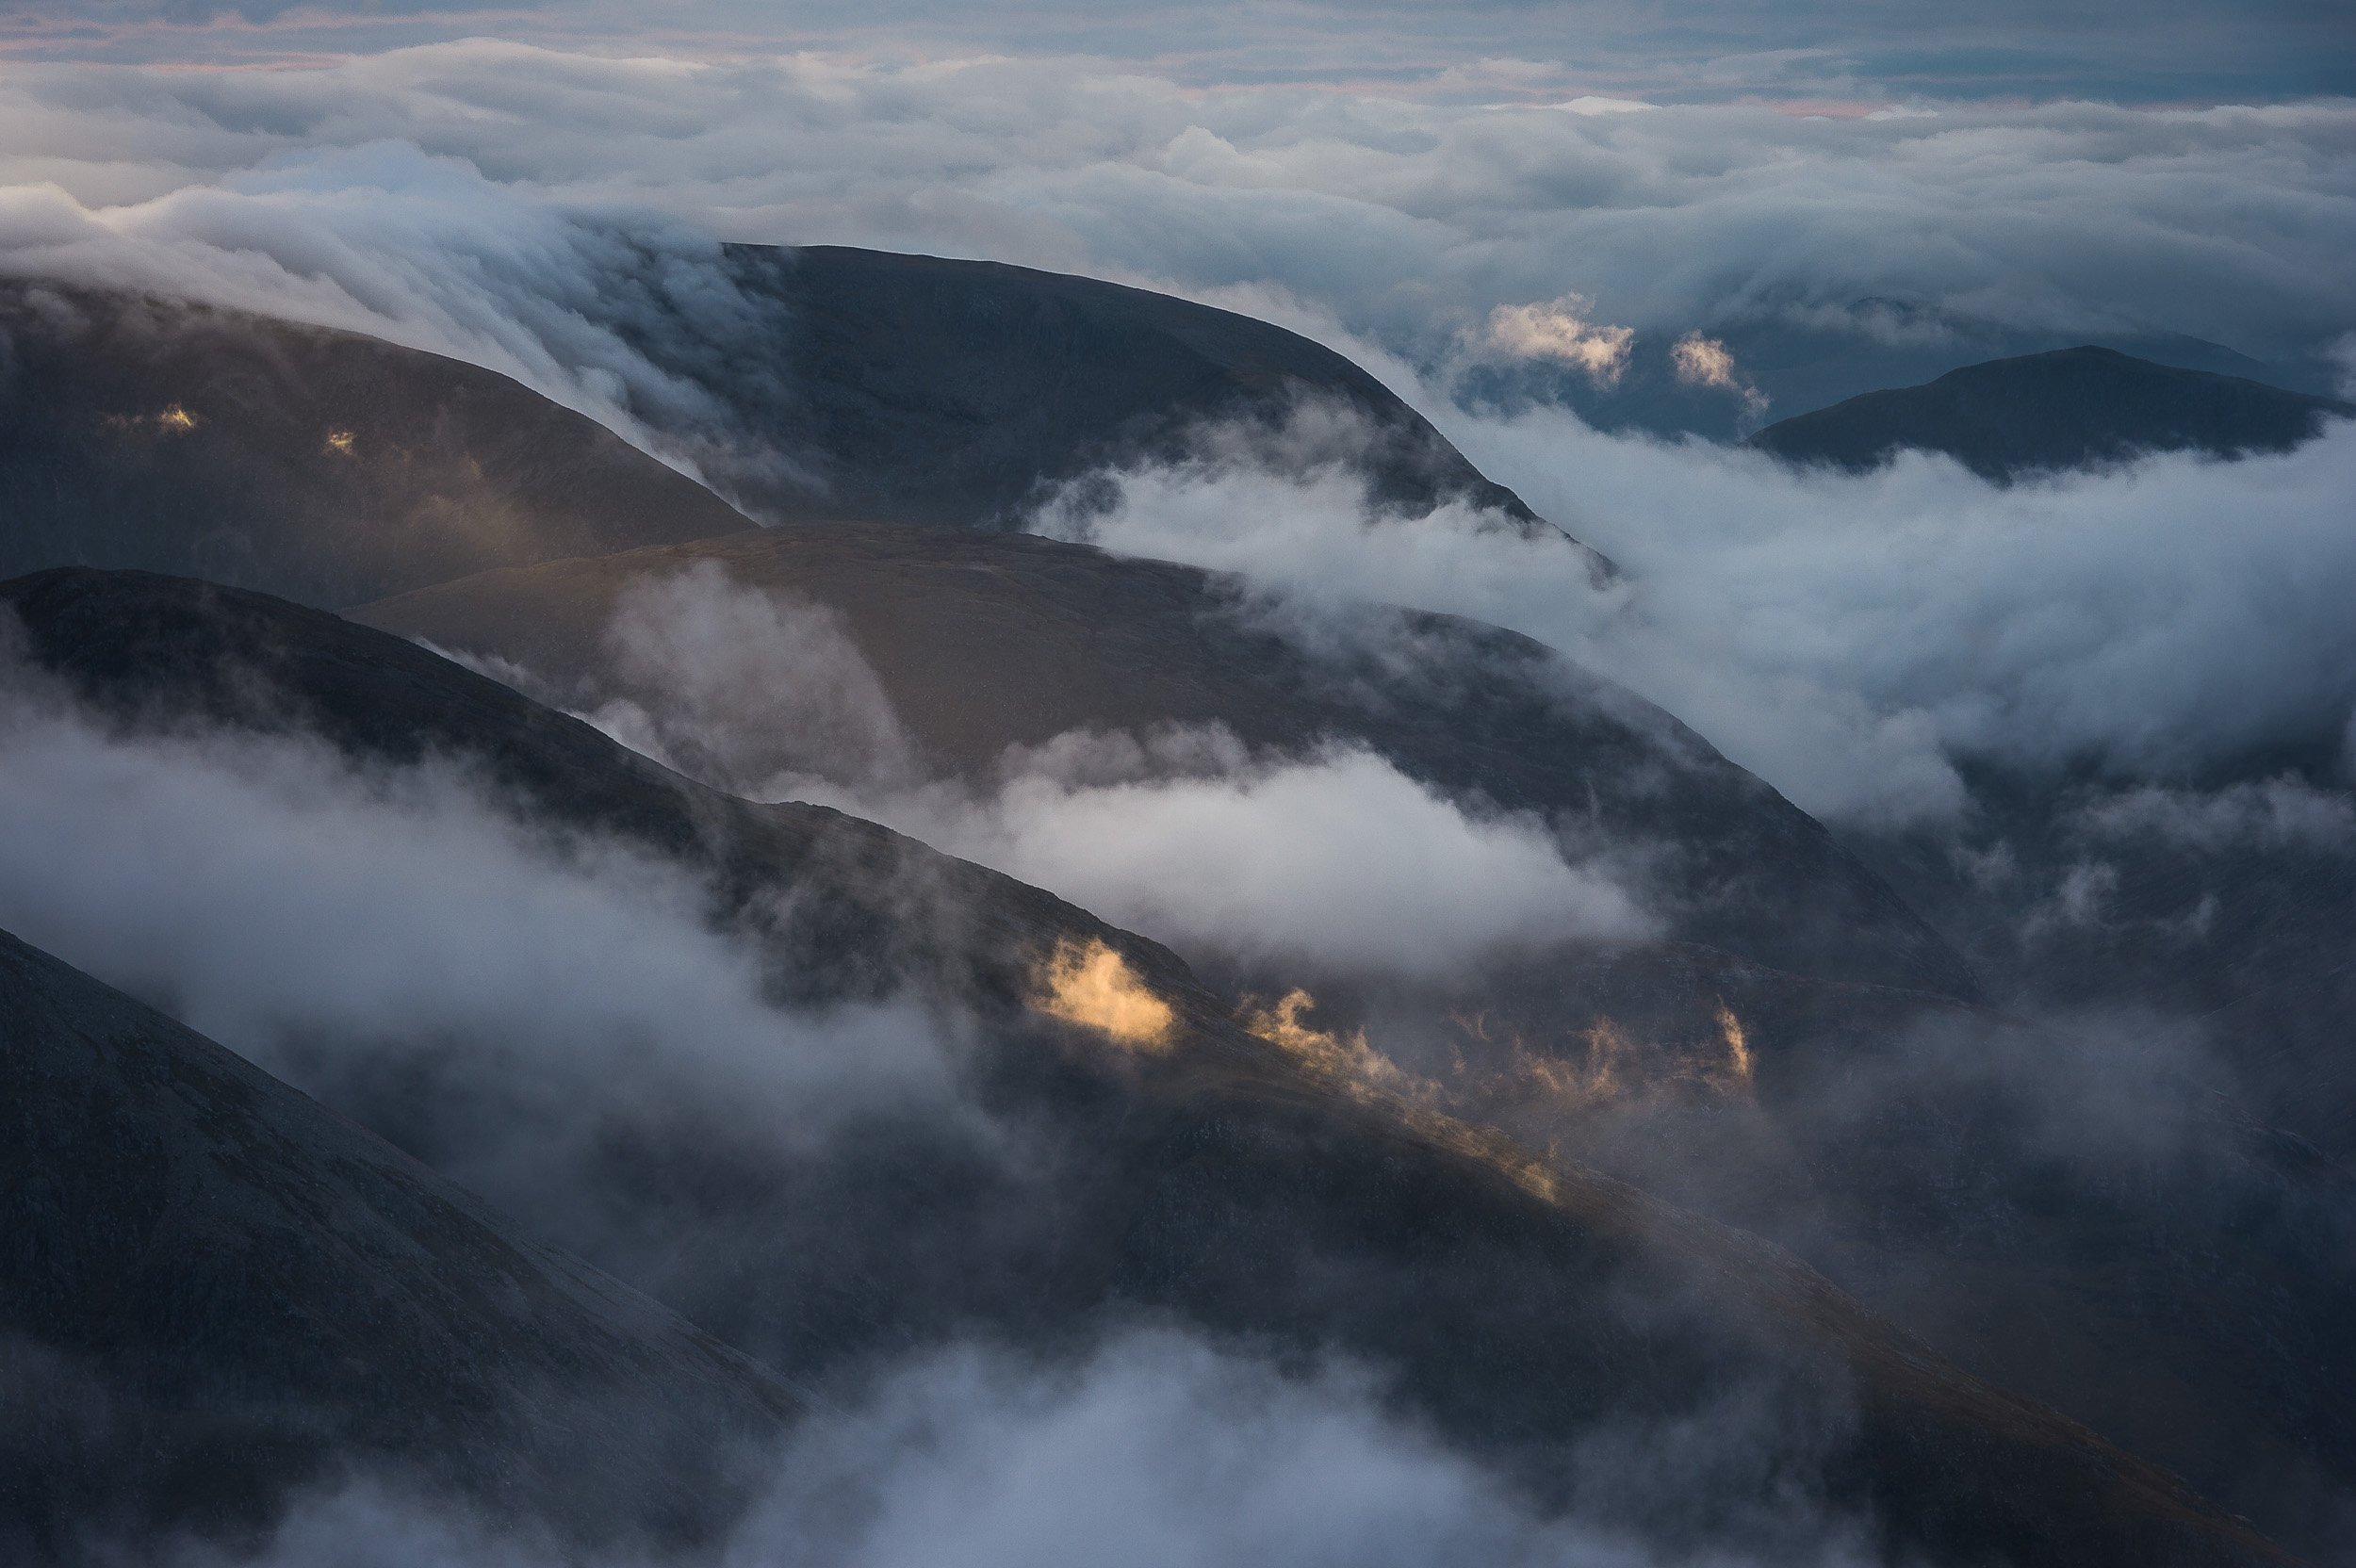 Clouds forming at dawn in the glens to the east of Stob Coire nan Lochan above Glen Coe in the West Highlands of Scotland.